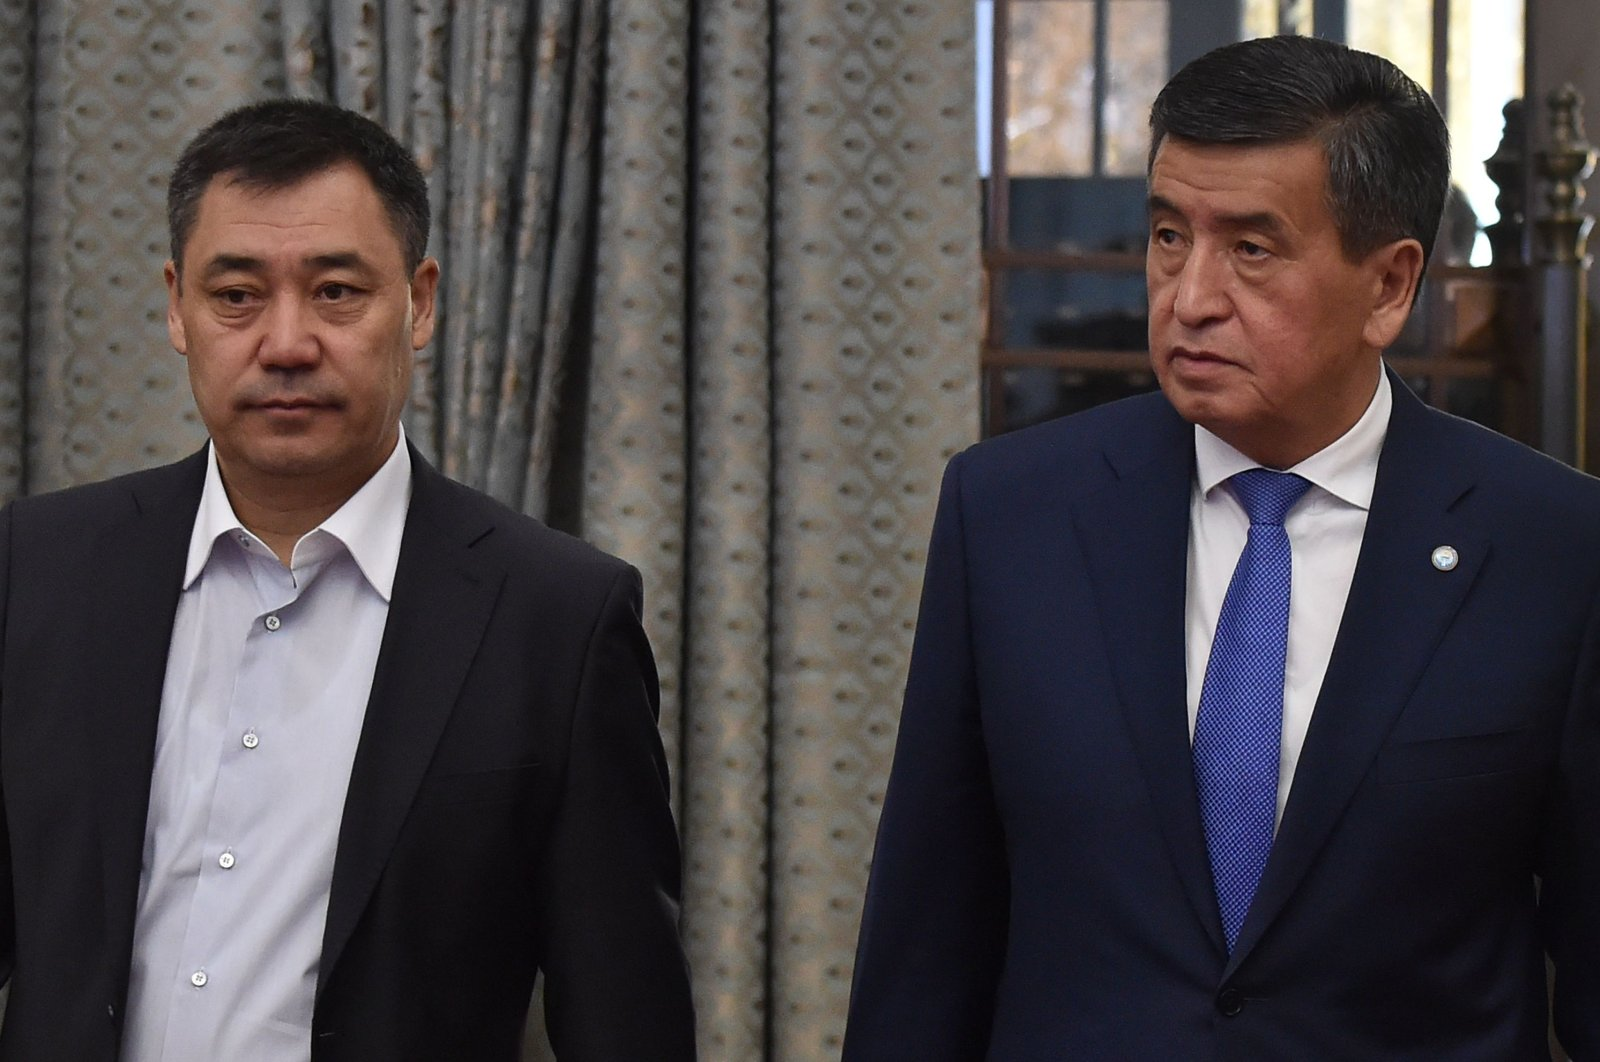 Kyrgyzstan's acting head of state Sadyr Zhaparov (L) and former President Sooronbai Jeenbekov attend the Kyrgyz Parliament extraordinary meeting at the Ala-Archa State Residence, Bishkek,  Kyrgyzstan, Oct. 16, 2020. (AFP Photo)